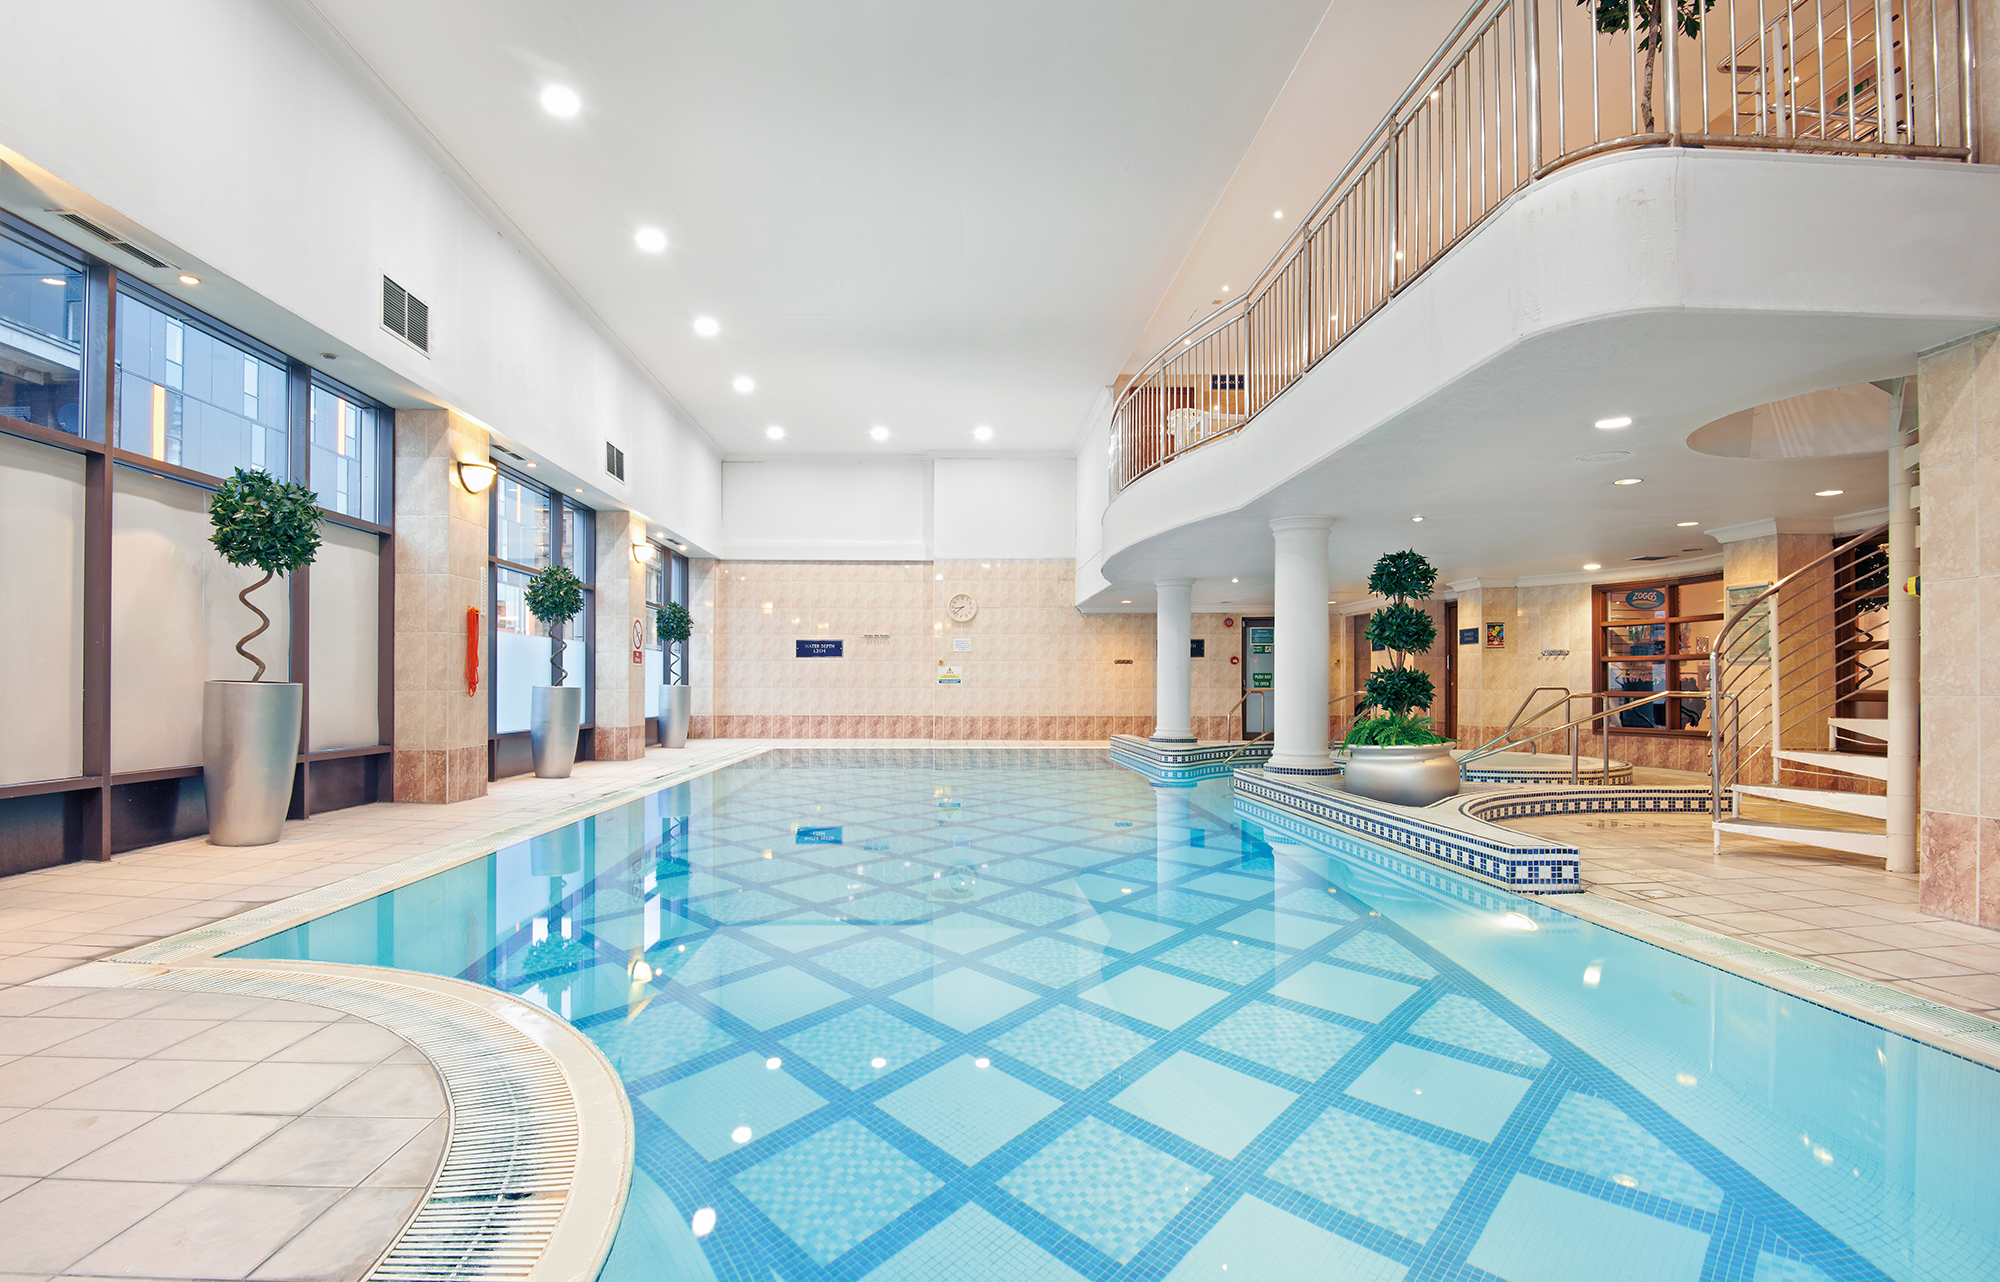 Juvenate glasgow juvenate health and leisure club - Hotels with swimming pools in scotland ...